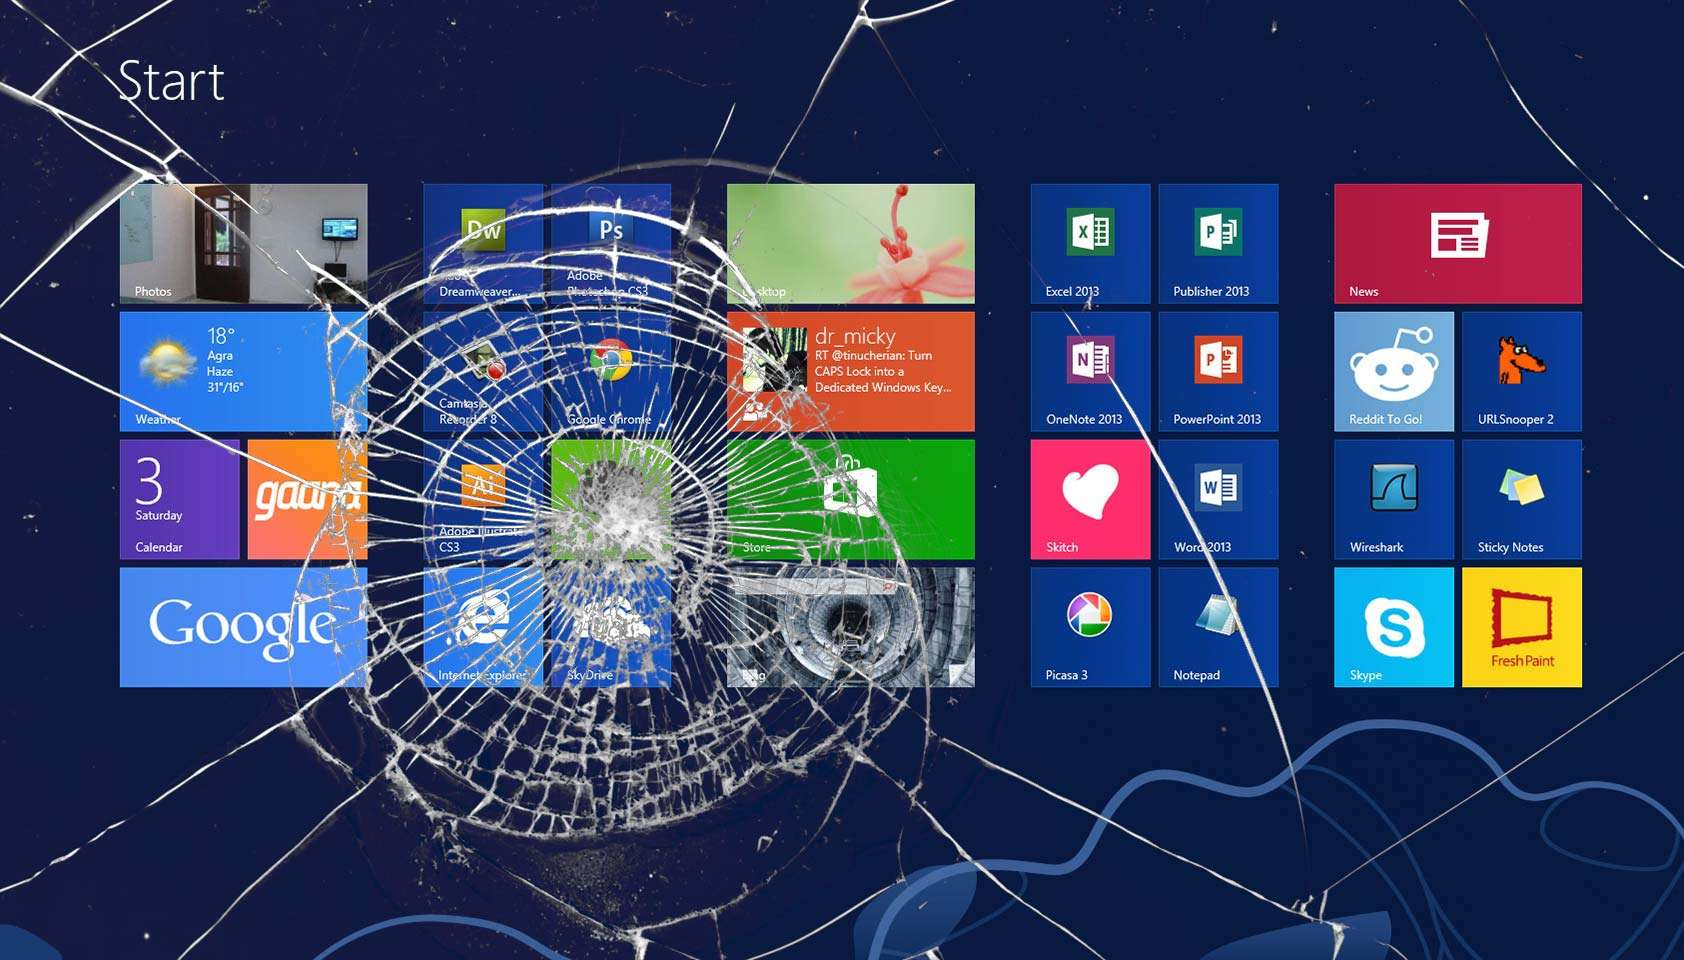 Show Your Support of Windows 8 With This Cracked Screen Wallpaper 1684x960